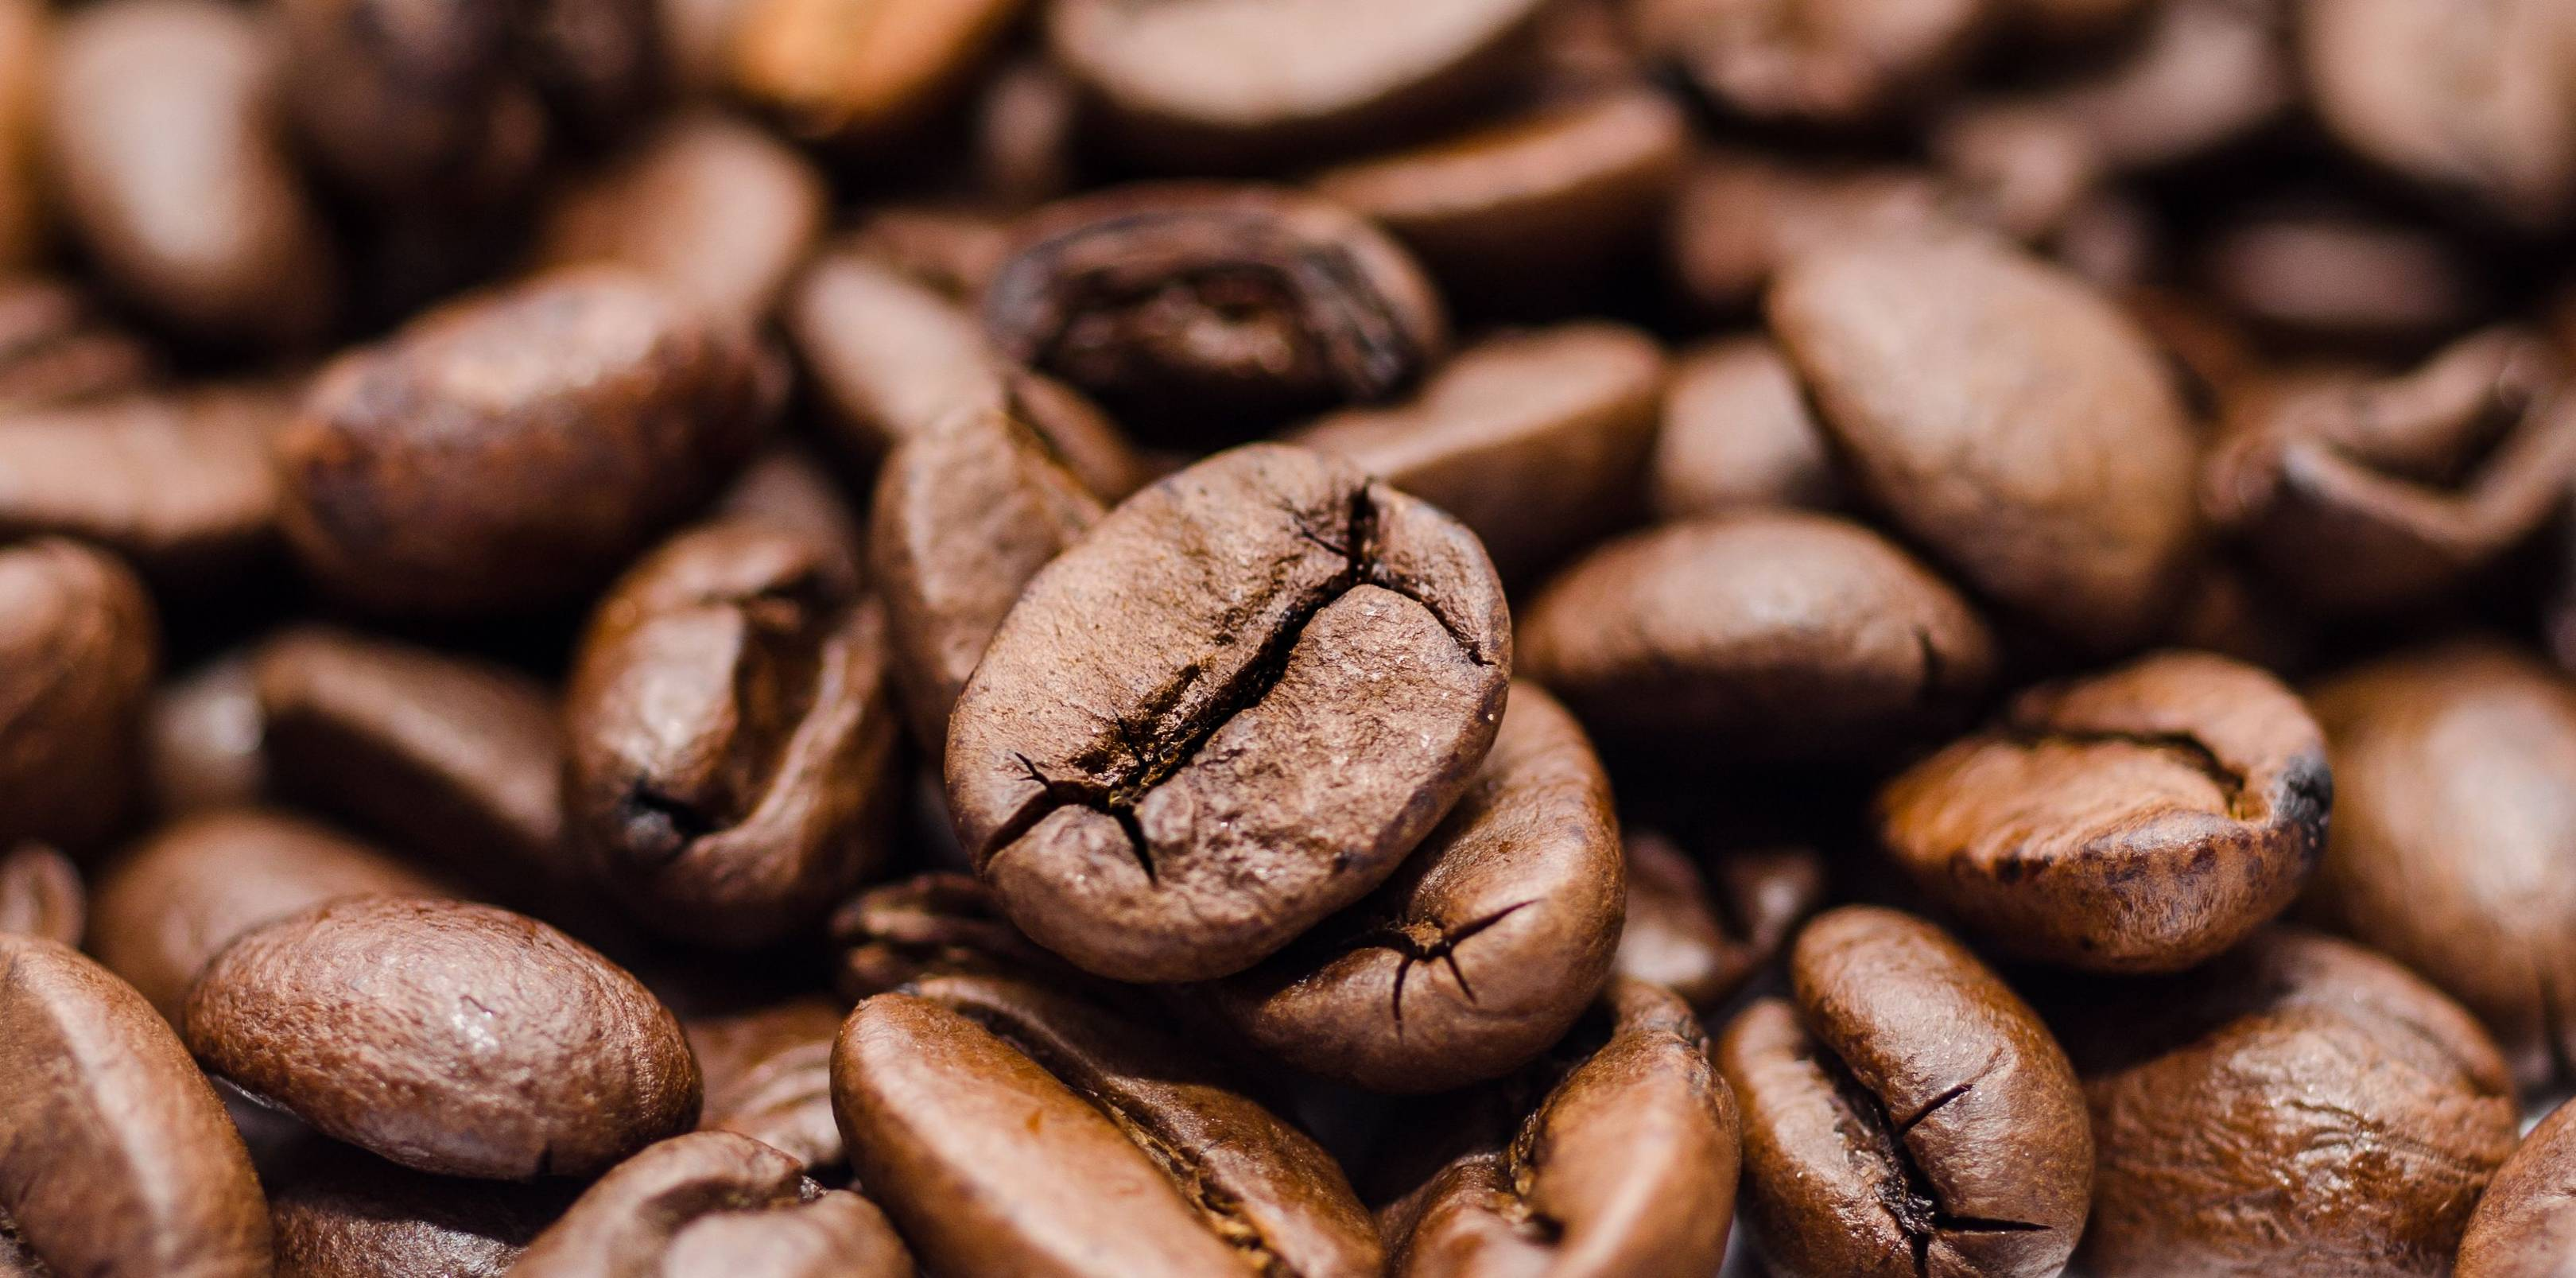 WIRED Awake July 11: Coffee drinkers live longer | WIRED UK